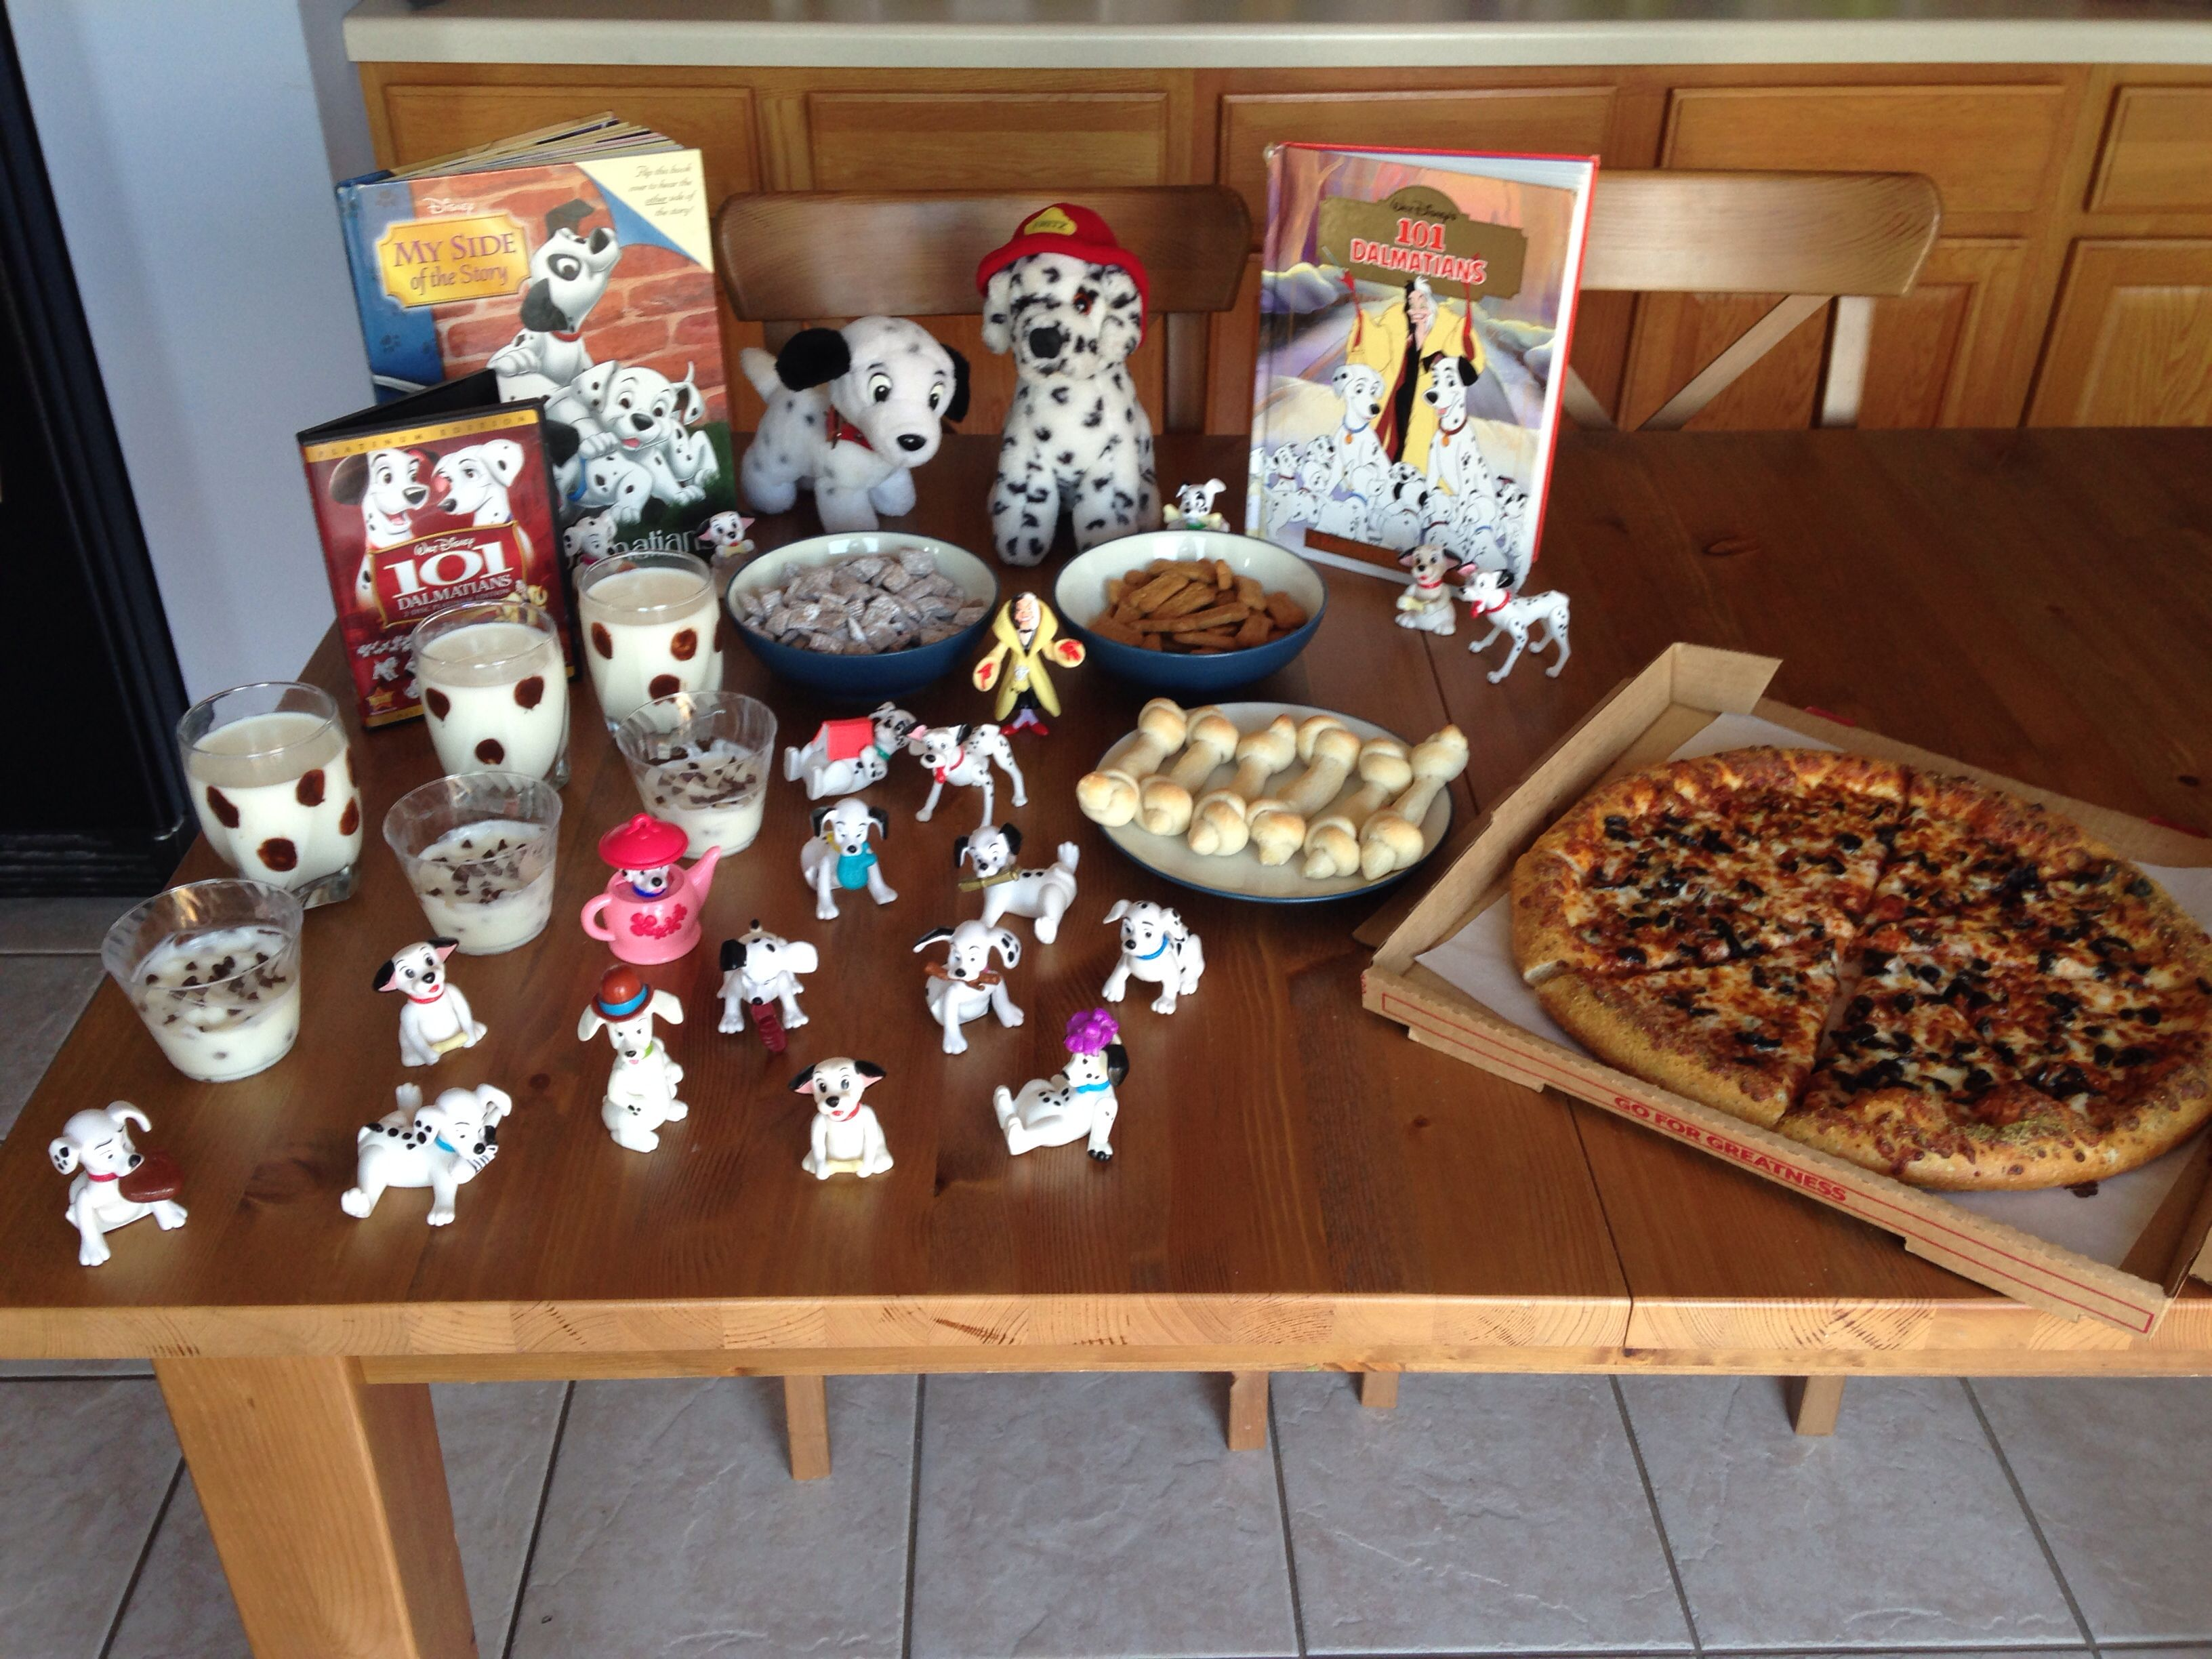 101 Dalmatians Dinner Pongo And Perditas Pizza Black Olives For B9d487b8bf24c9a8654ab2829124f083 369365606911764689